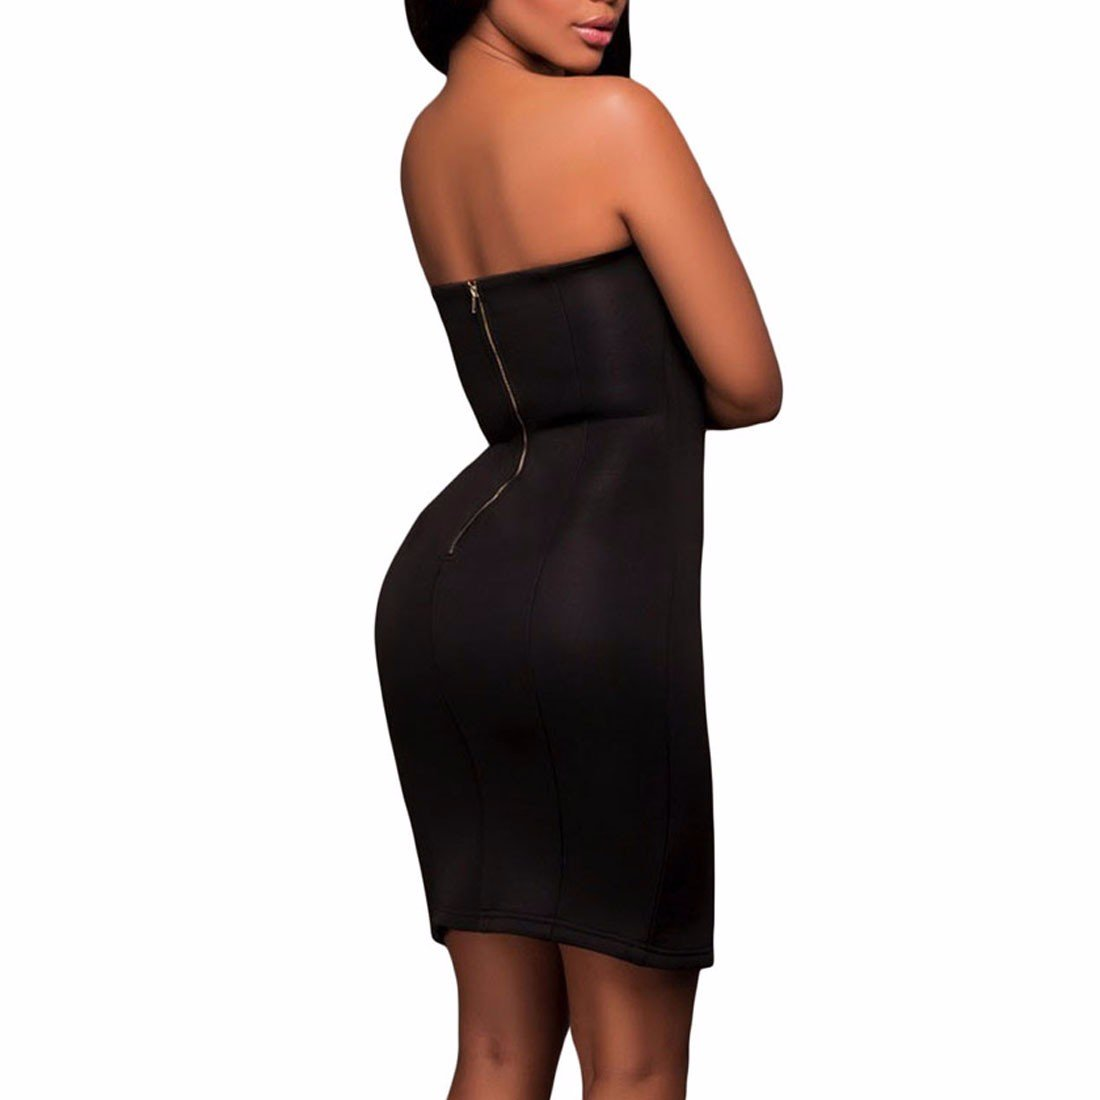 Women Low Cut Off Shoulder Sleeveless Split Helm Bodycon Stretchy Midi Dress: Amazon.co.uk: Clothing